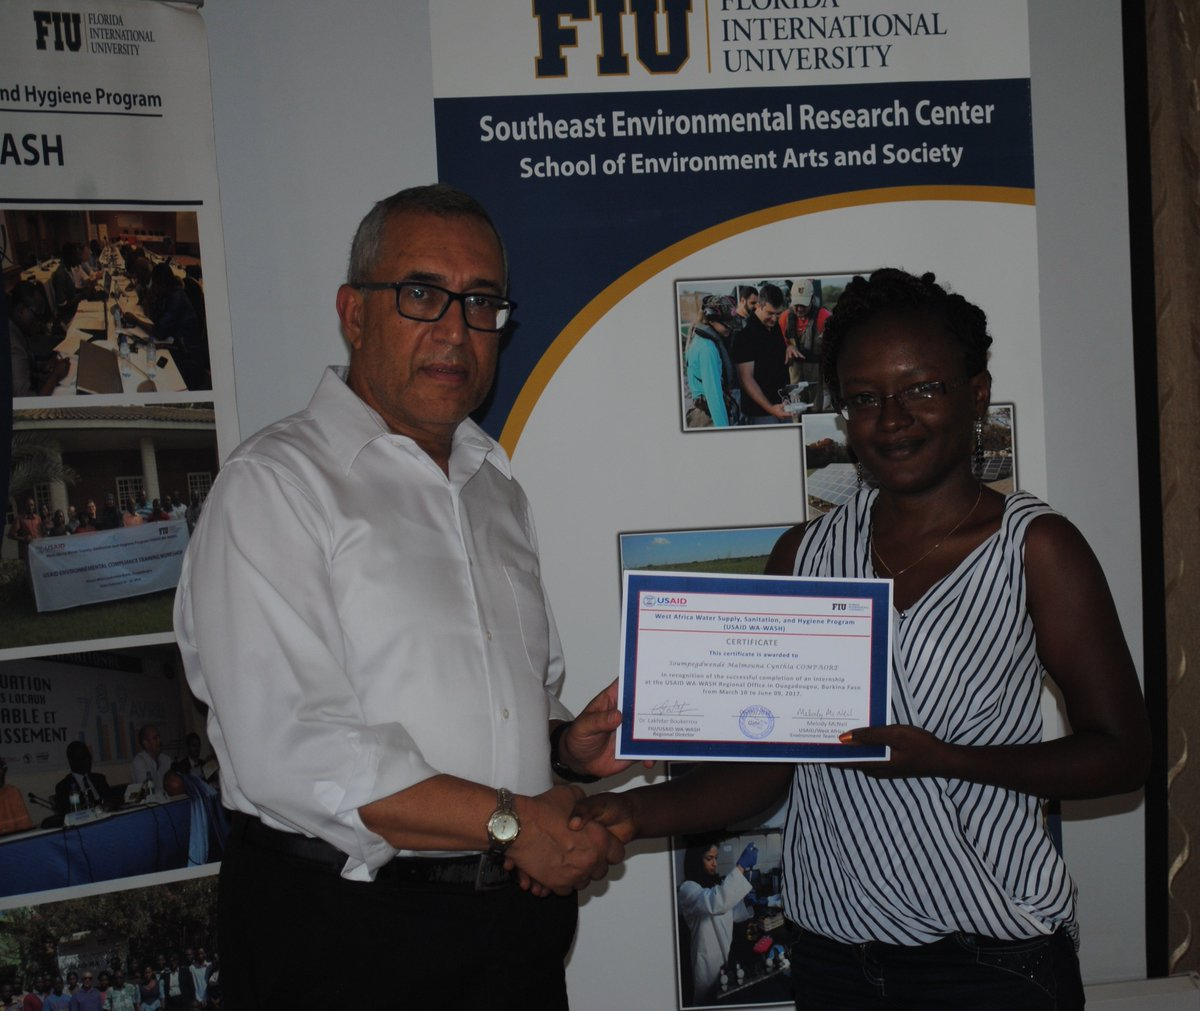 Fiu institute of water and environment on twitter lakboukerrou fiu institute of water and environment on twitter lakboukerrou inwefiu start intern program in w africa w 270 interns incl 1betcityfo Gallery